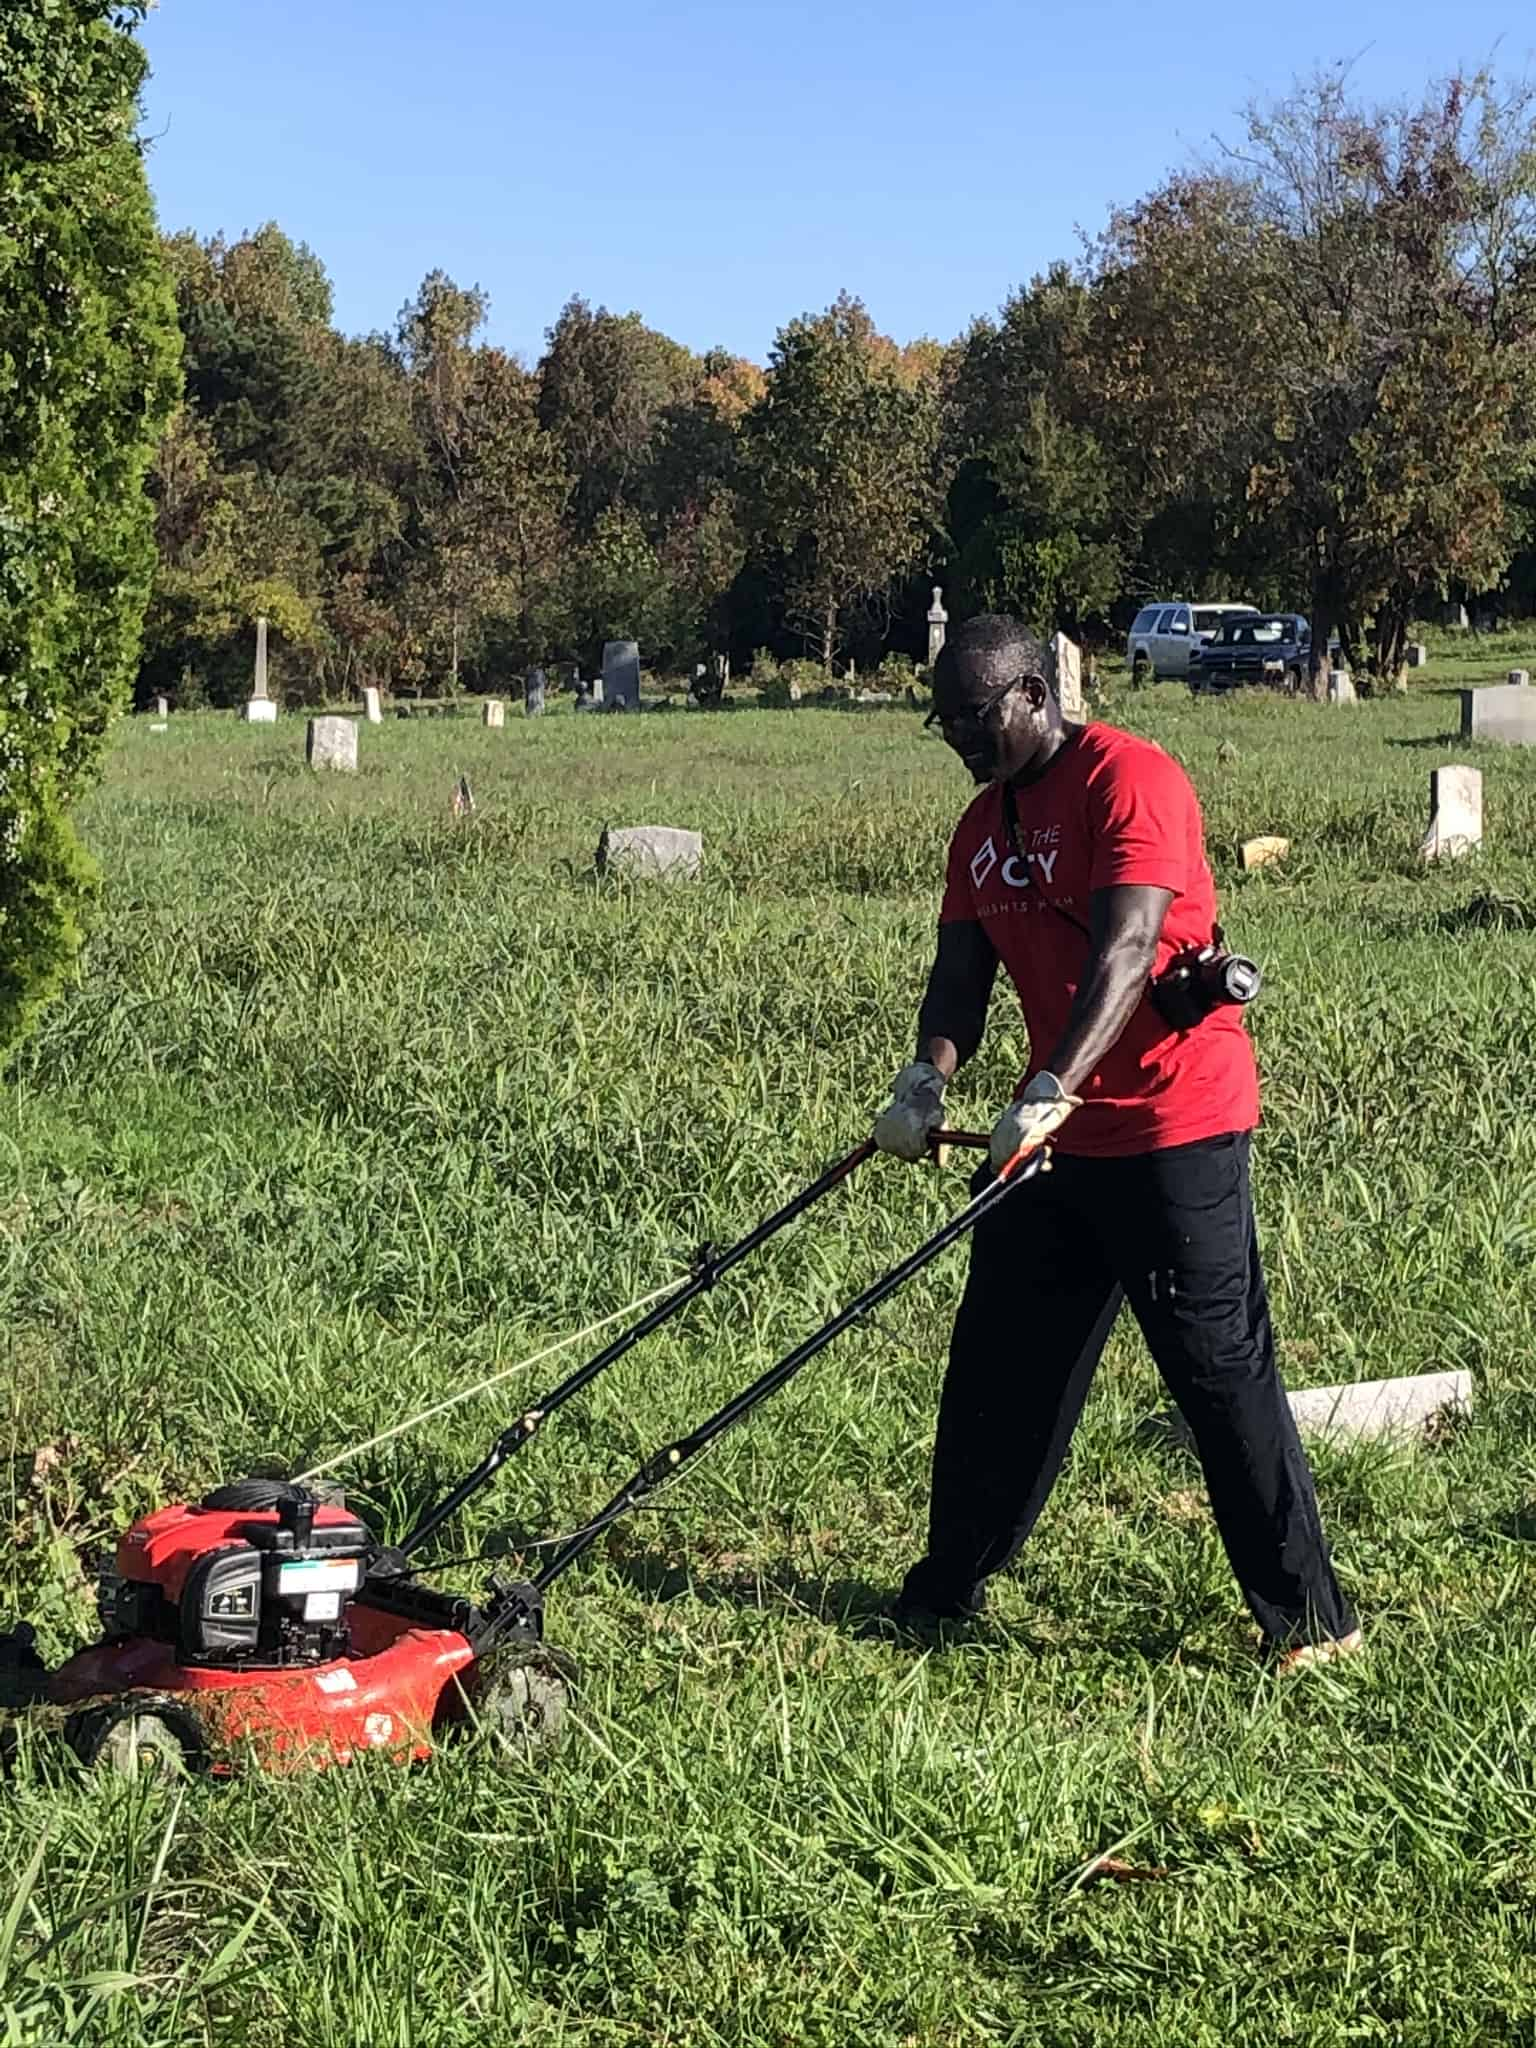 Volunteer mowing at Woodland Cemetery, a historic African American cemetery in Richmond, Virginia